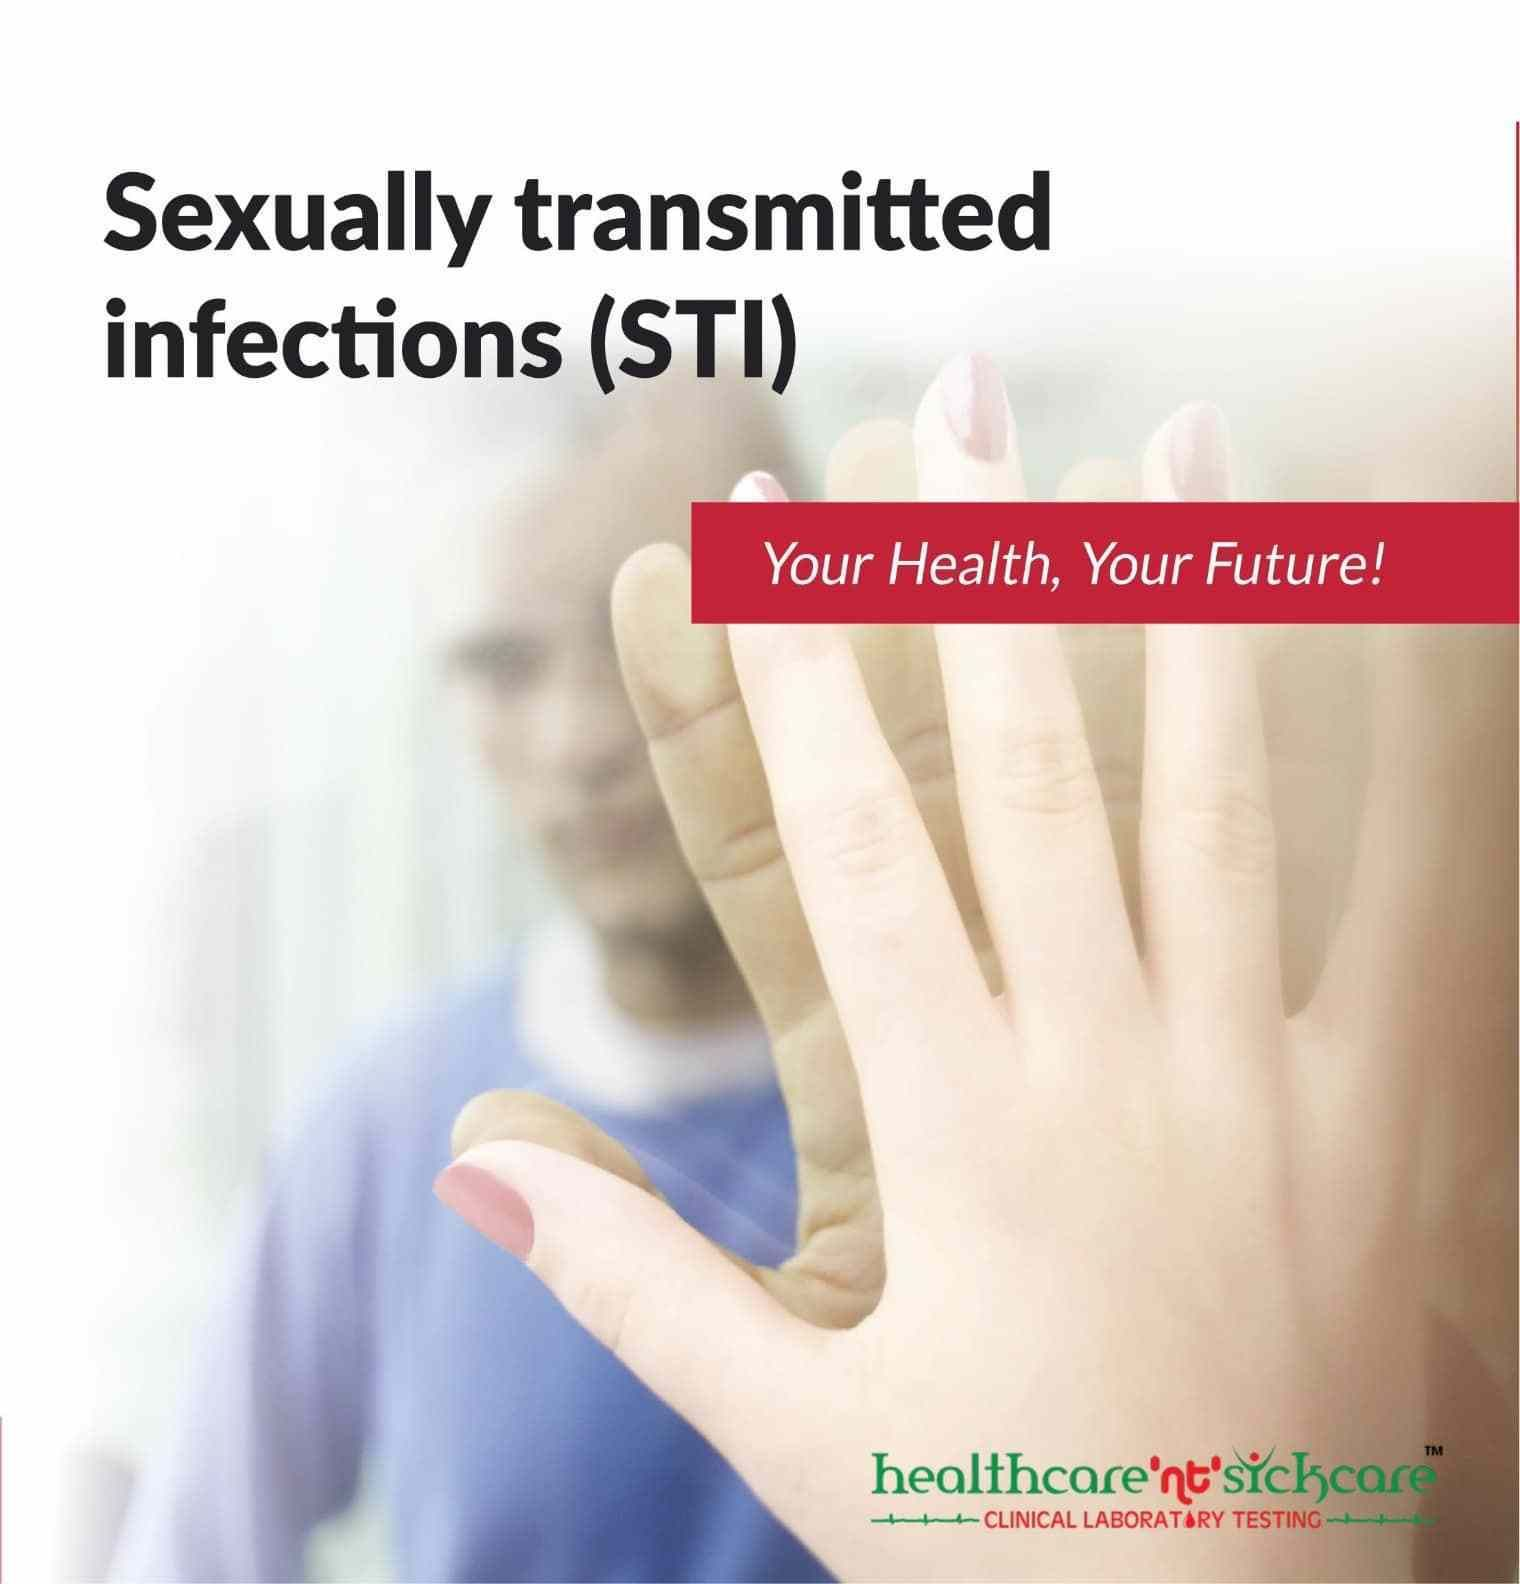 Sti Testing In Pune Sti Screening Test In Pune Std Test Panel Sti Test Panel Std Test Cost In Pune Sti T Sexually Transmitted Sexually Transmitted Diseases Sti